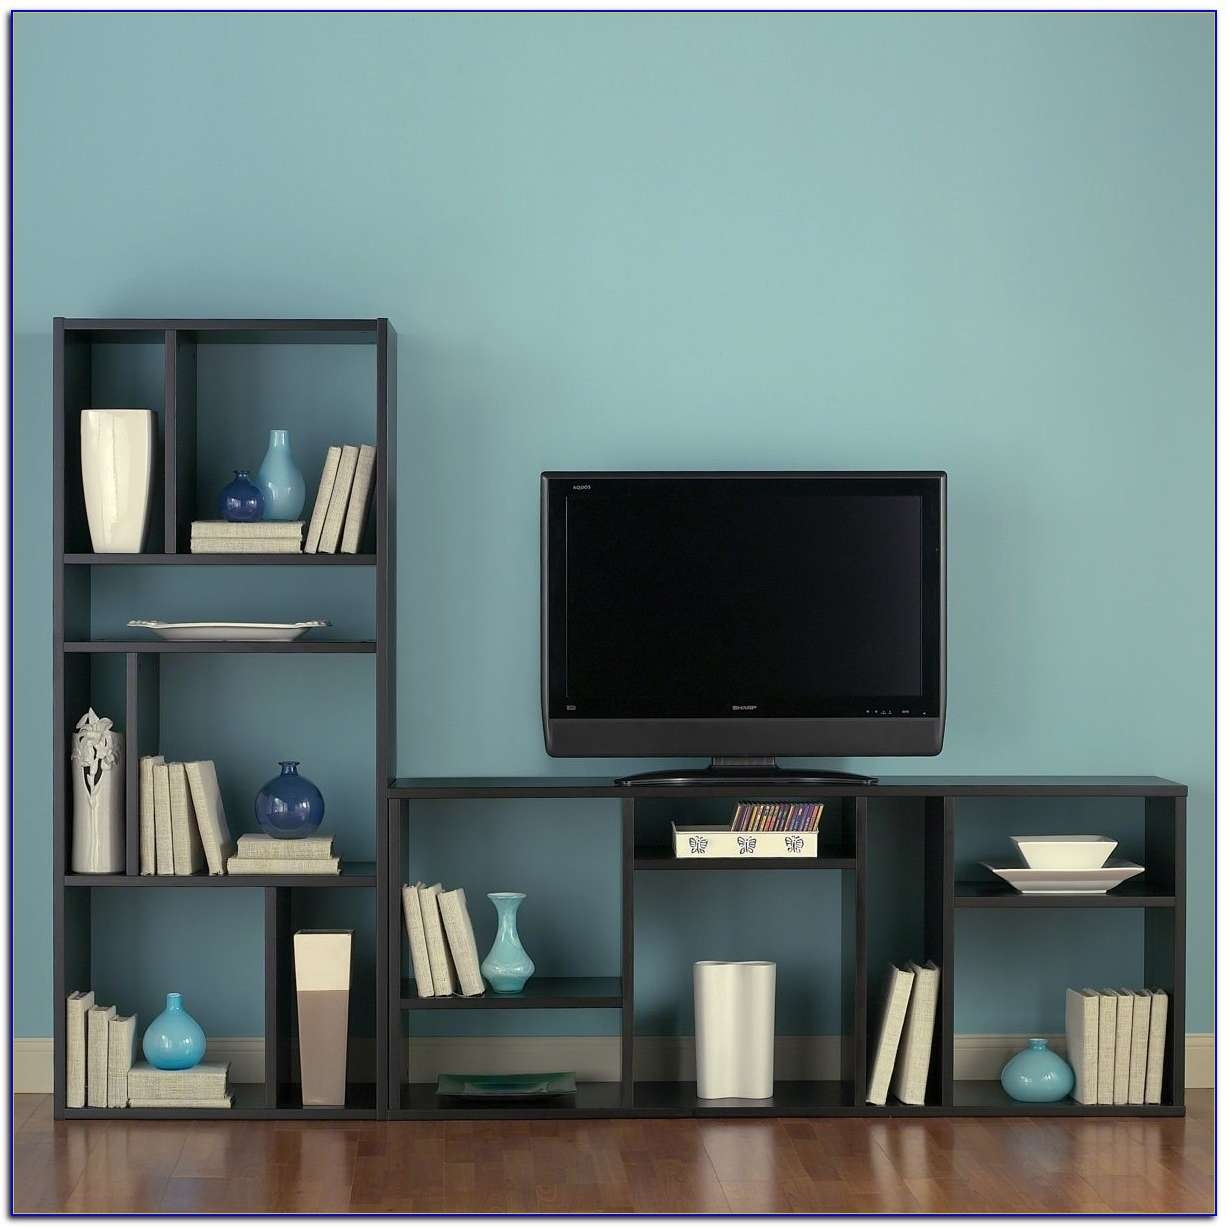 Tv Stand With Matching Bookcases – Bookcase : 59804 #a87eanq761 With Tv Stands With Matching Bookcases (View 12 of 15)